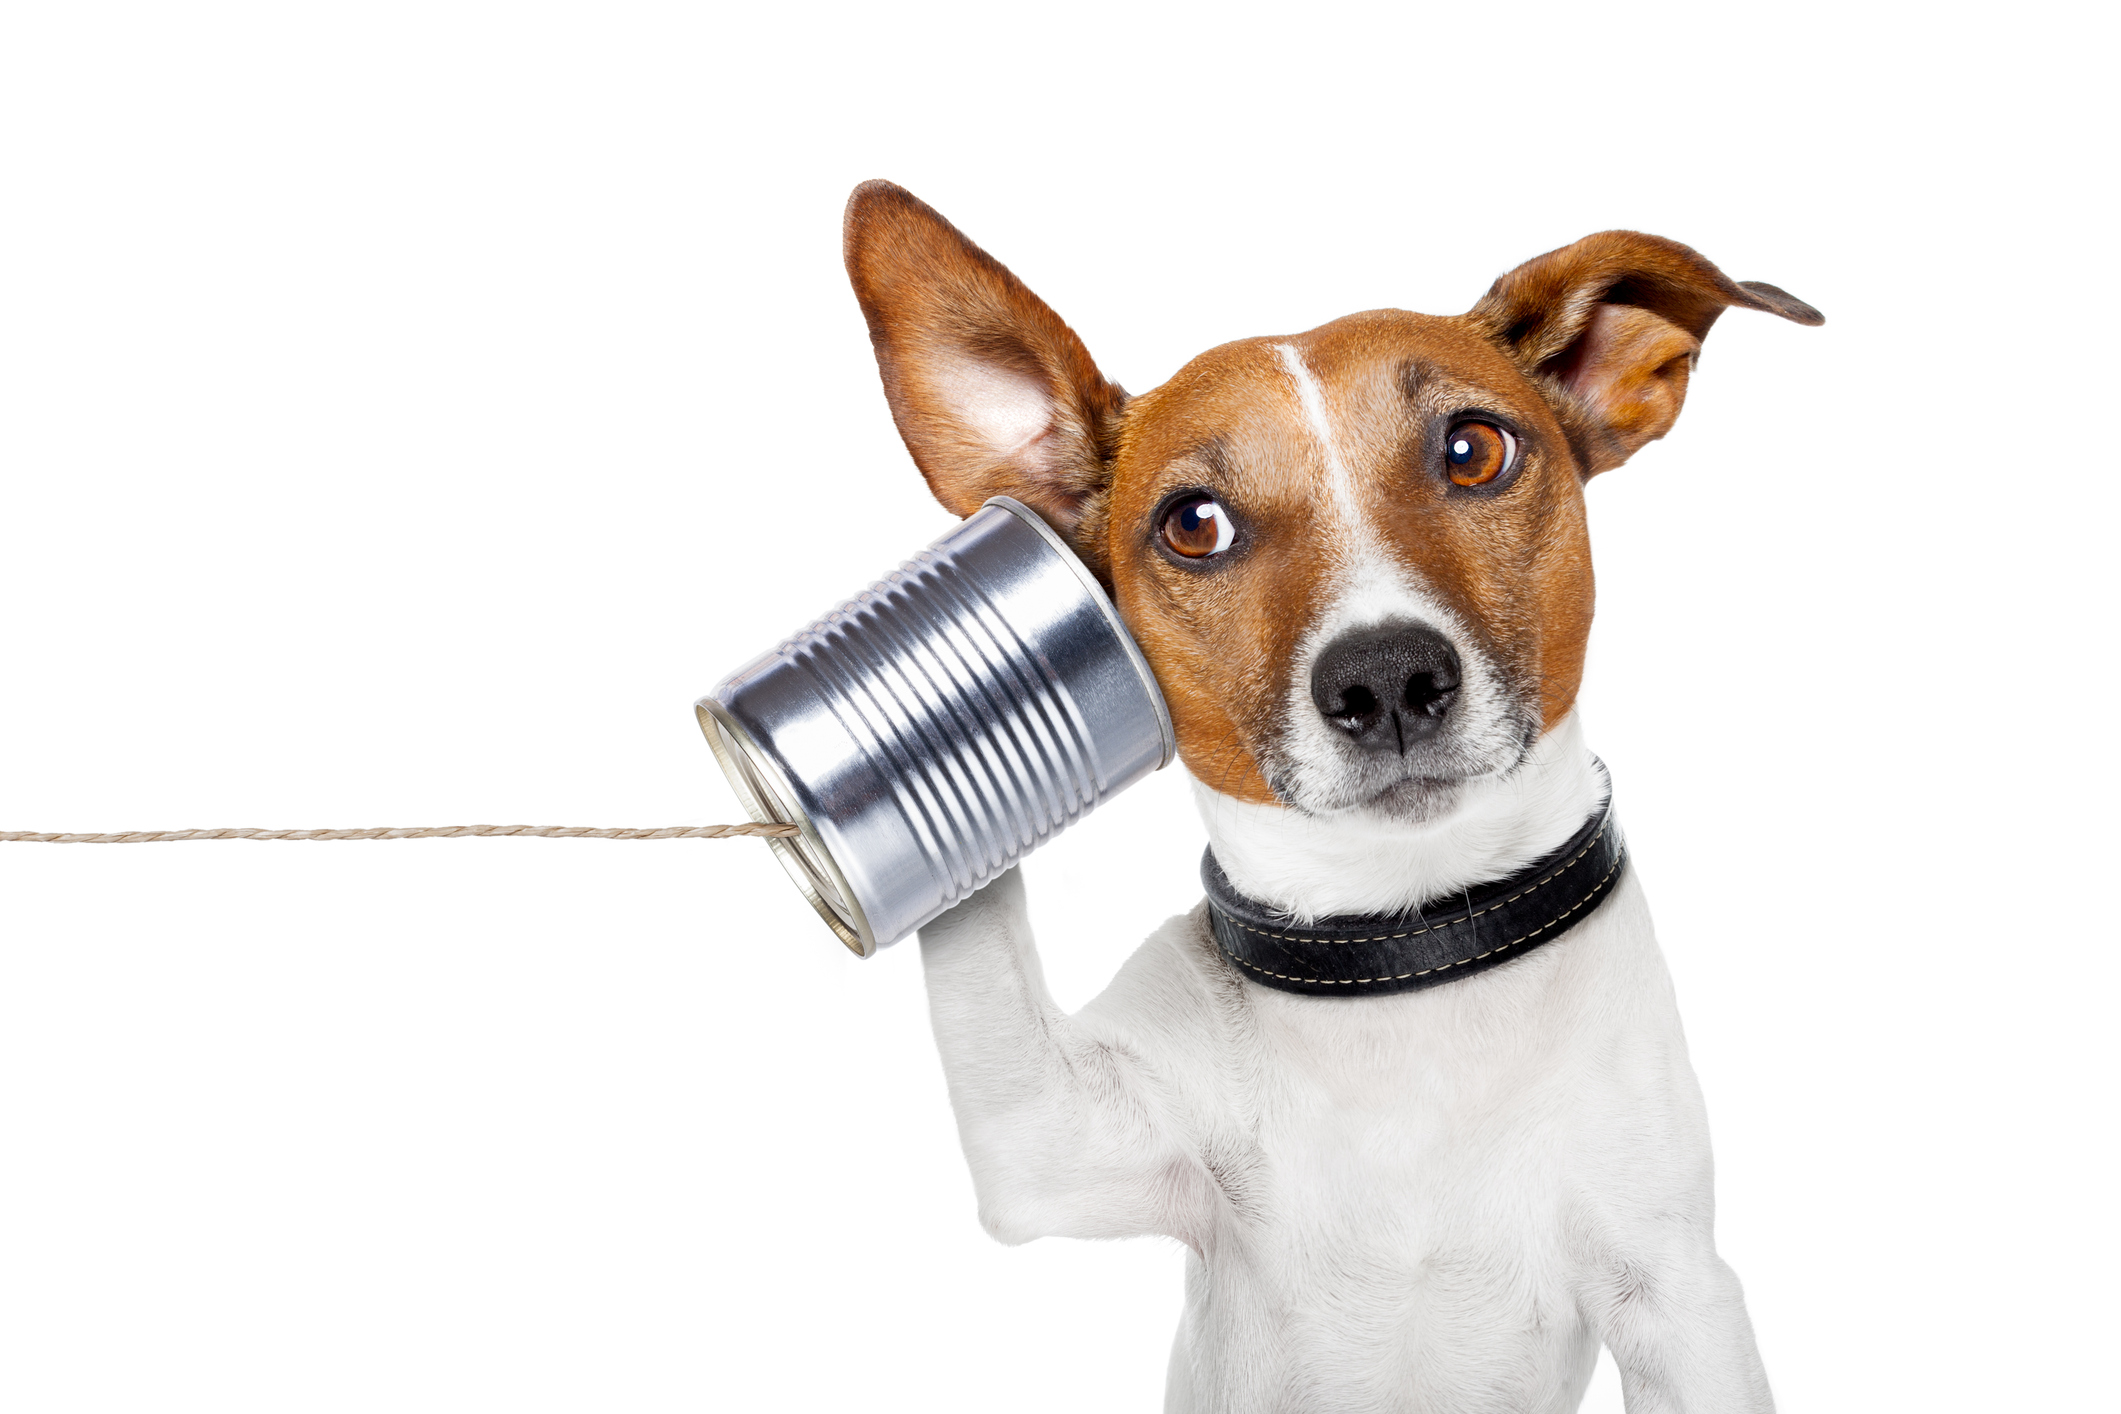 We'd love to hear from you - Questions?Shoot us an email:KindnessInMotion.MAH@gmail.comCall/TextOur main line: (479) 435-4606Tech on the Go!: (479) 435-4578Counseling with Amy: (479) 531-3917Access your Patient Portal to request an appointment, vaccine reminders, visit summaries, laboratory results and more!Visit our Online Store to request refills of your pet's medications, preventatives, and prescription foods!